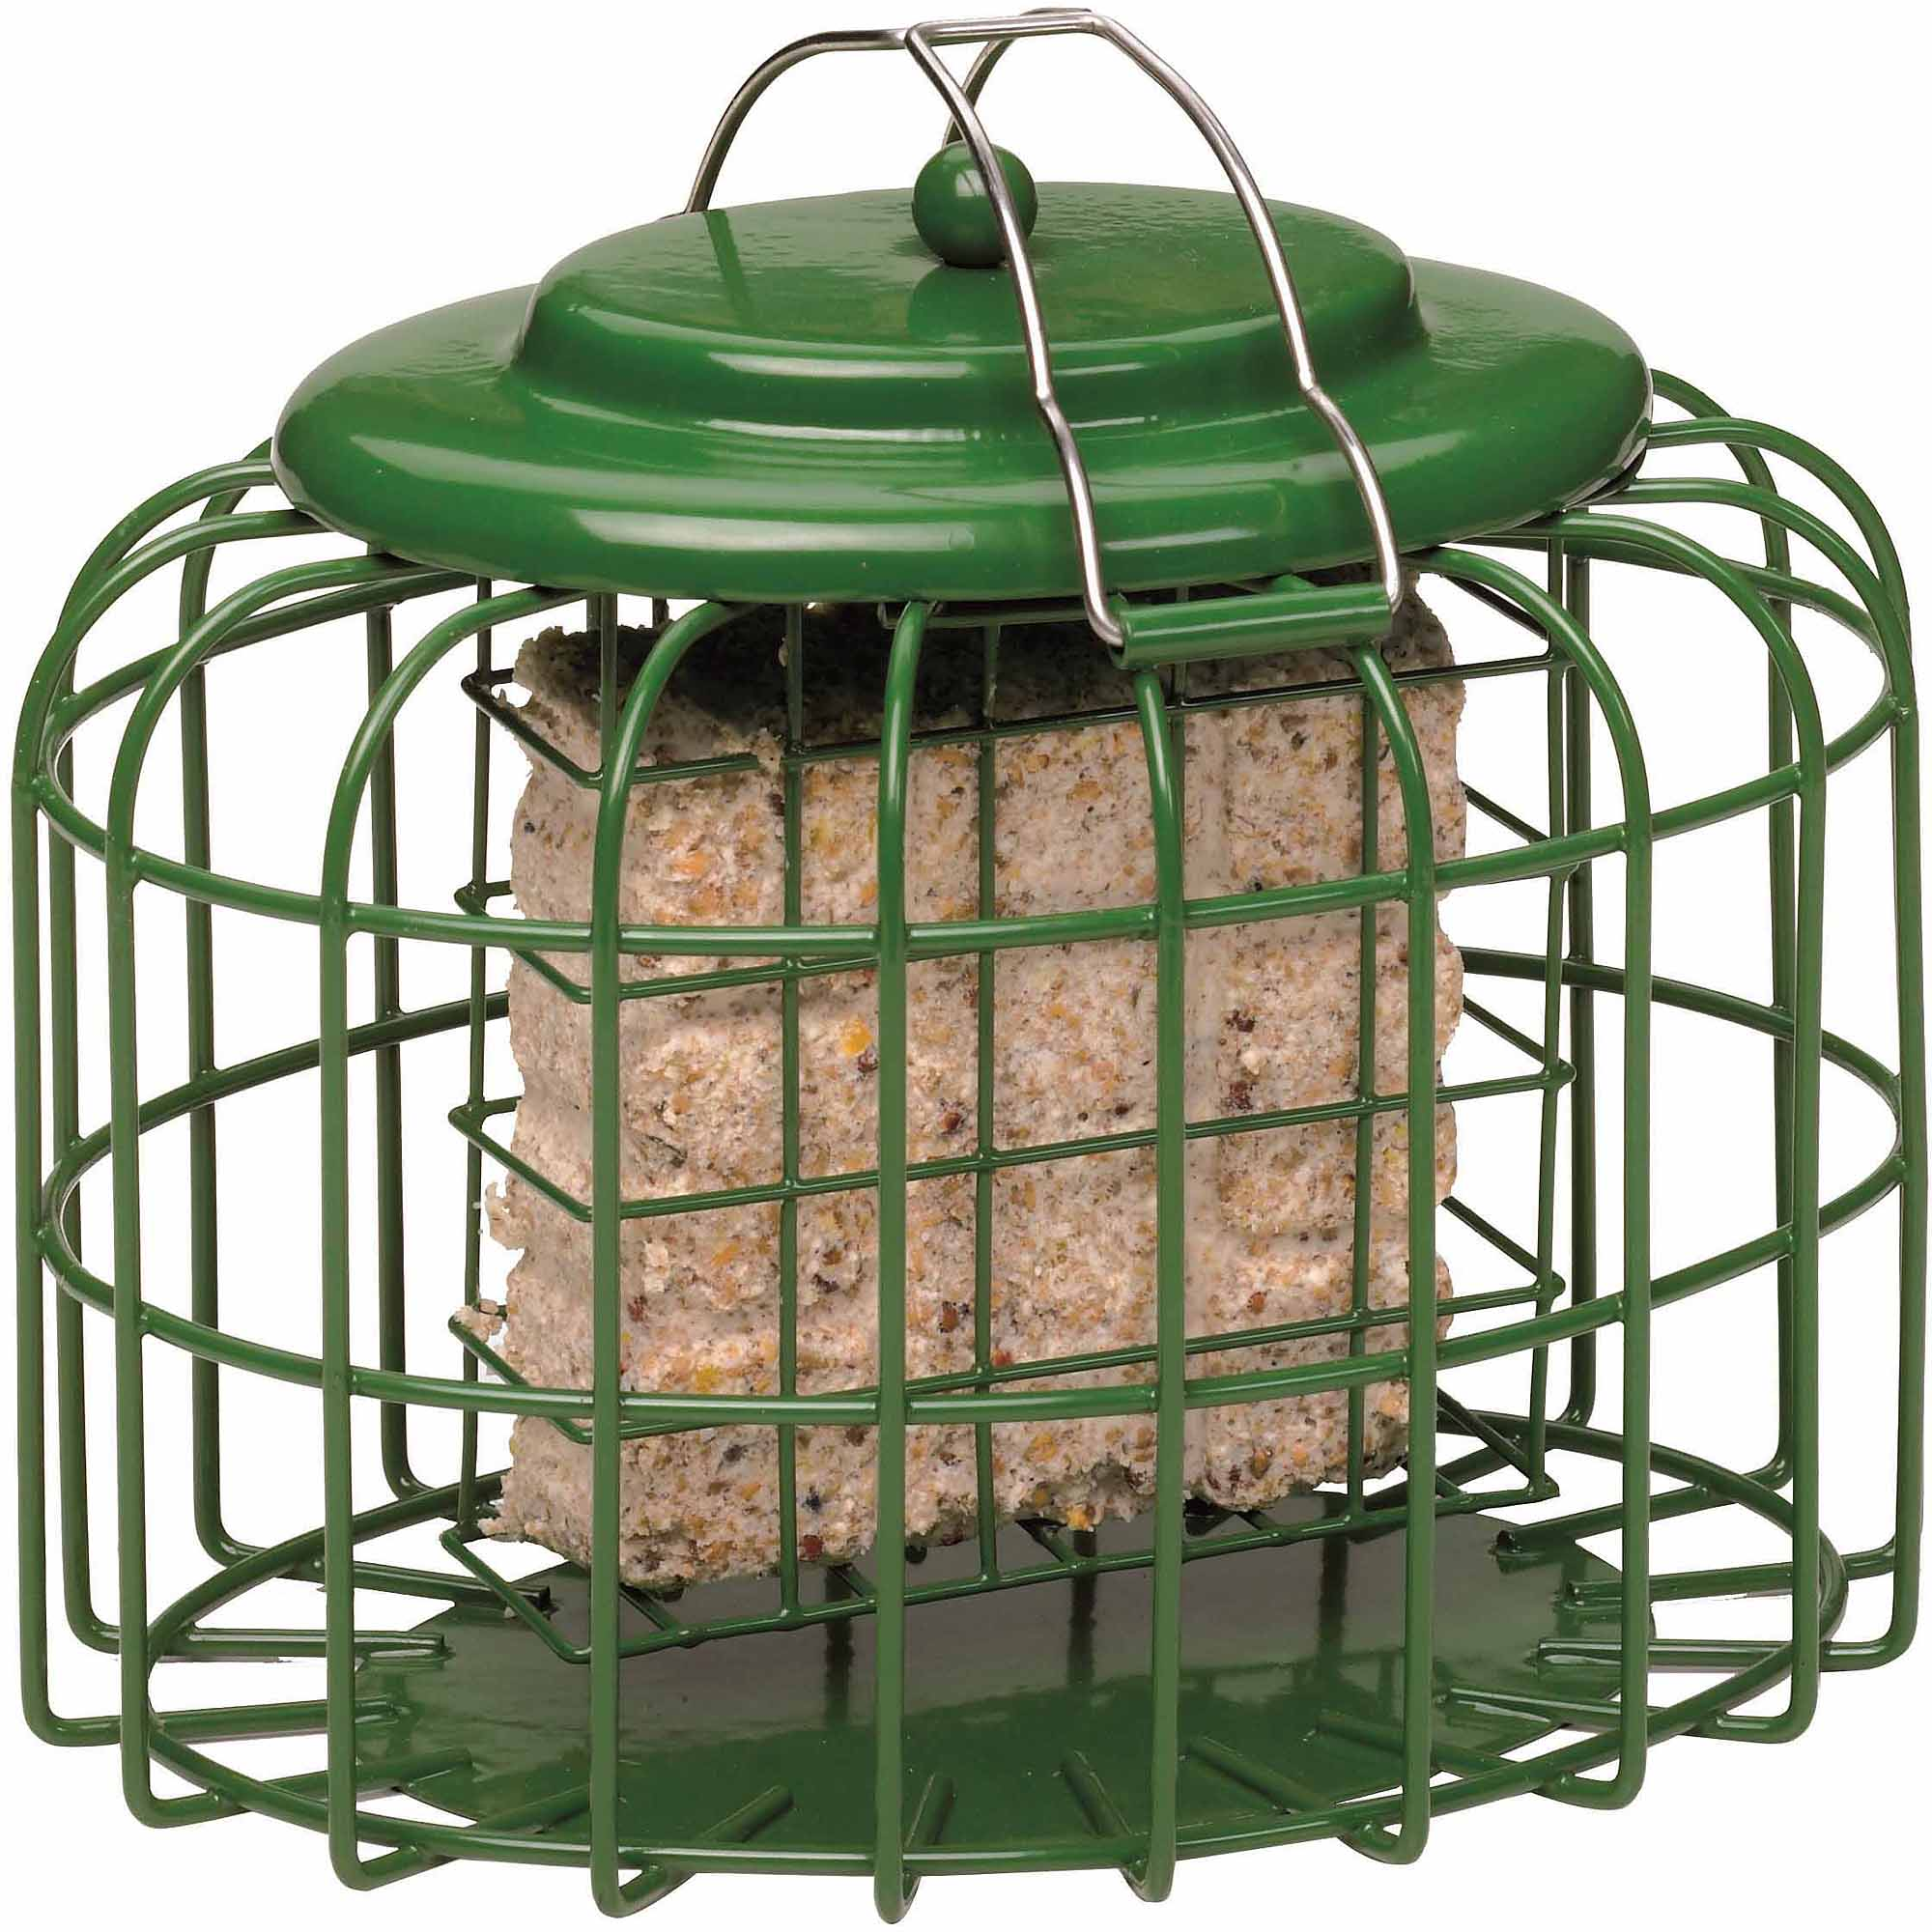 The Nuttery Oval Suet-Cake Squirrel Resistant Bird Feeder, Ocean Green